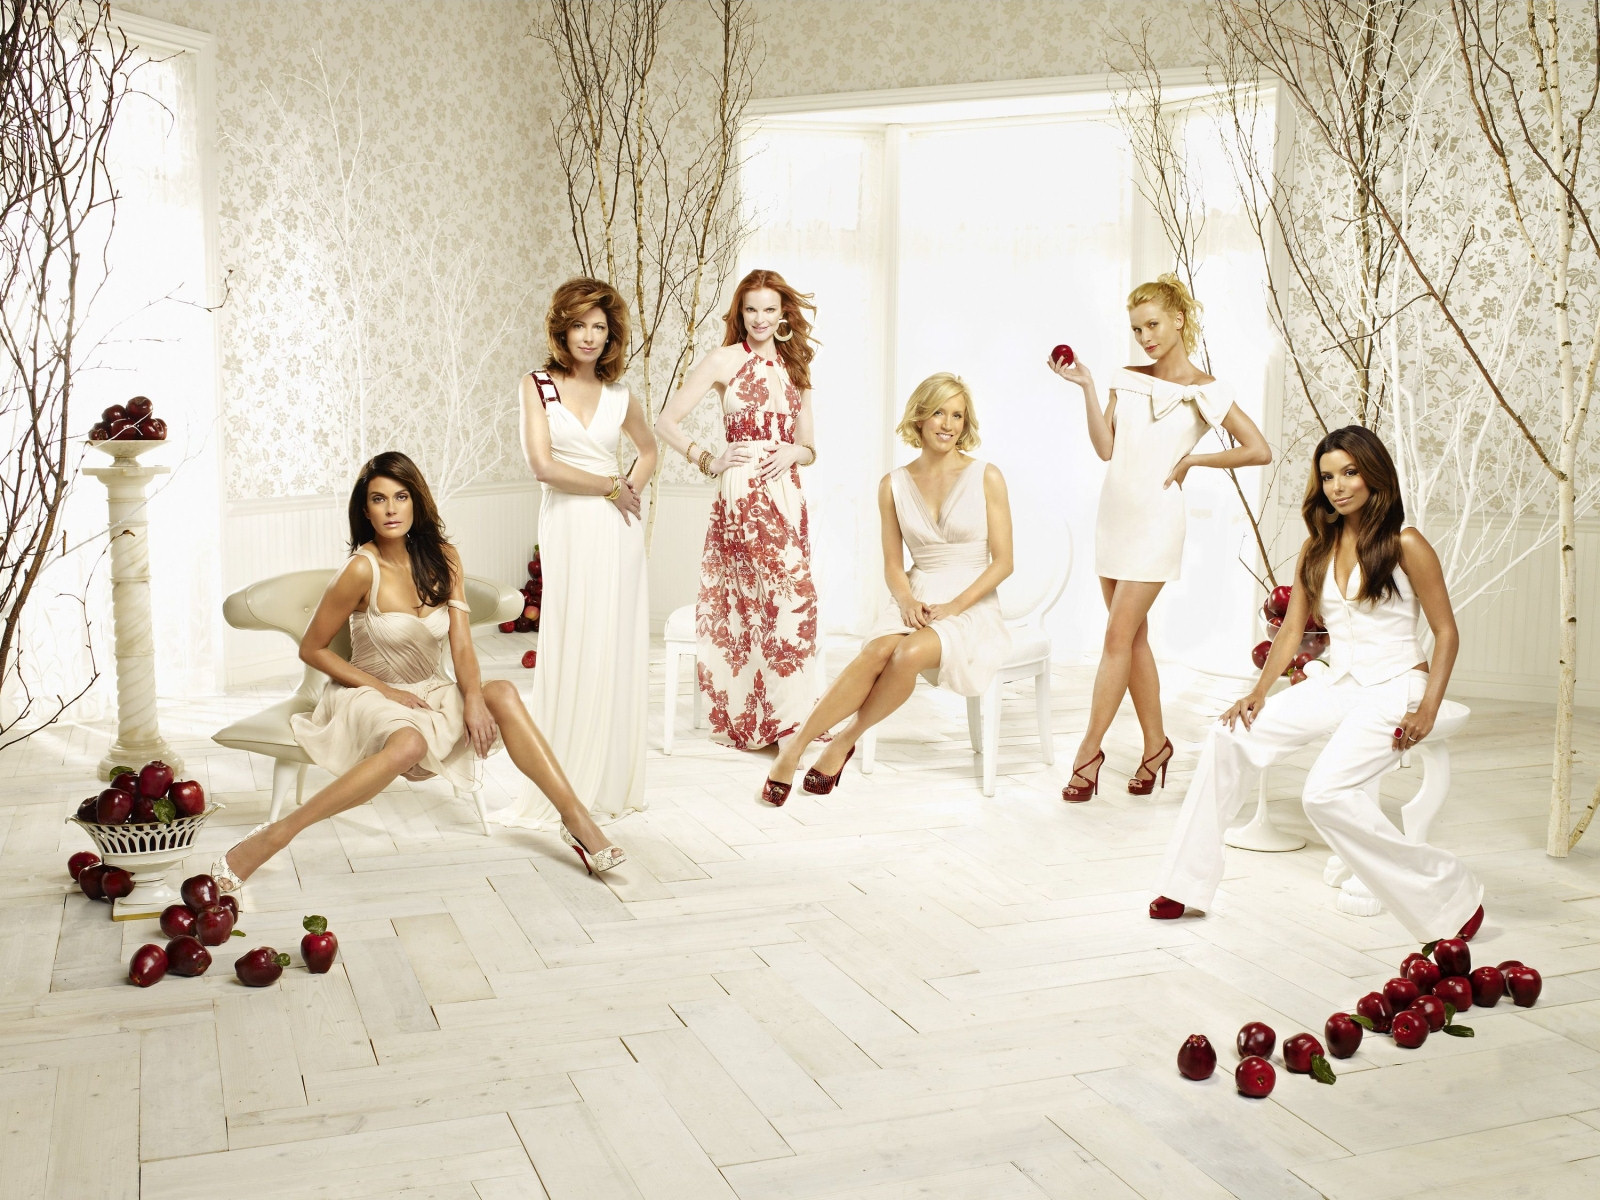 Desperate_Housewives_20_1600x1200.jpg